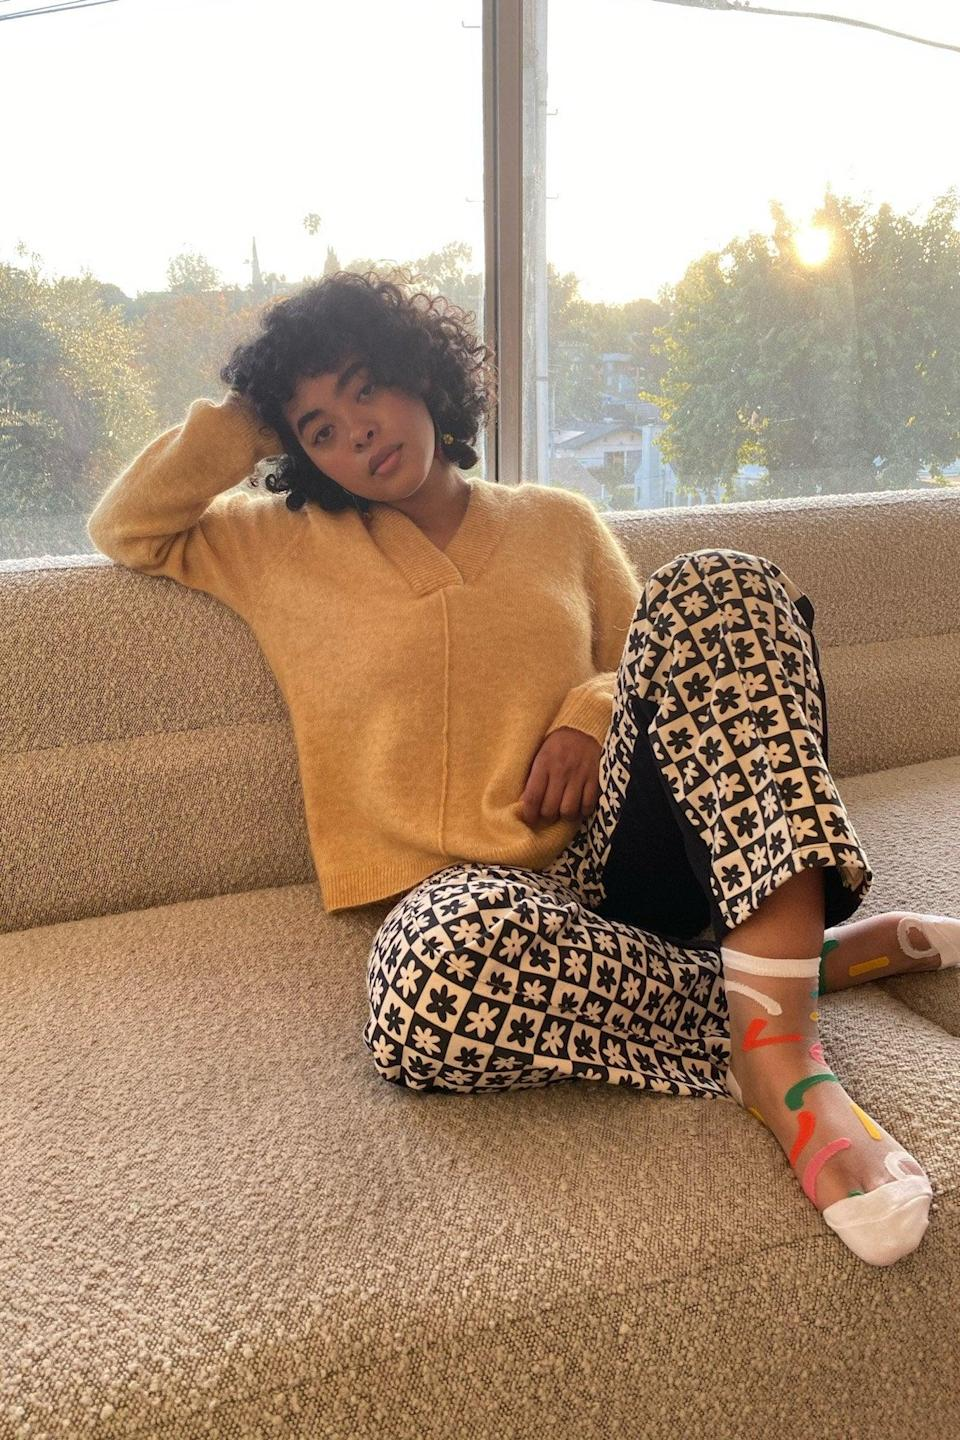 """<br><br><strong>Lisa Says Gah</strong> Chica Knit - Spruce Yellow, $, available at <a href=""""https://go.skimresources.com/?id=30283X879131&url=https%3A%2F%2Flisasaysgah.com%2Fcollections%2F30-off-tops%2Fproducts%2Fchica-knit-spruce-yellow"""" rel=""""nofollow noopener"""" target=""""_blank"""" data-ylk=""""slk:Lisa Says Gah"""" class=""""link rapid-noclick-resp"""">Lisa Says Gah</a>"""